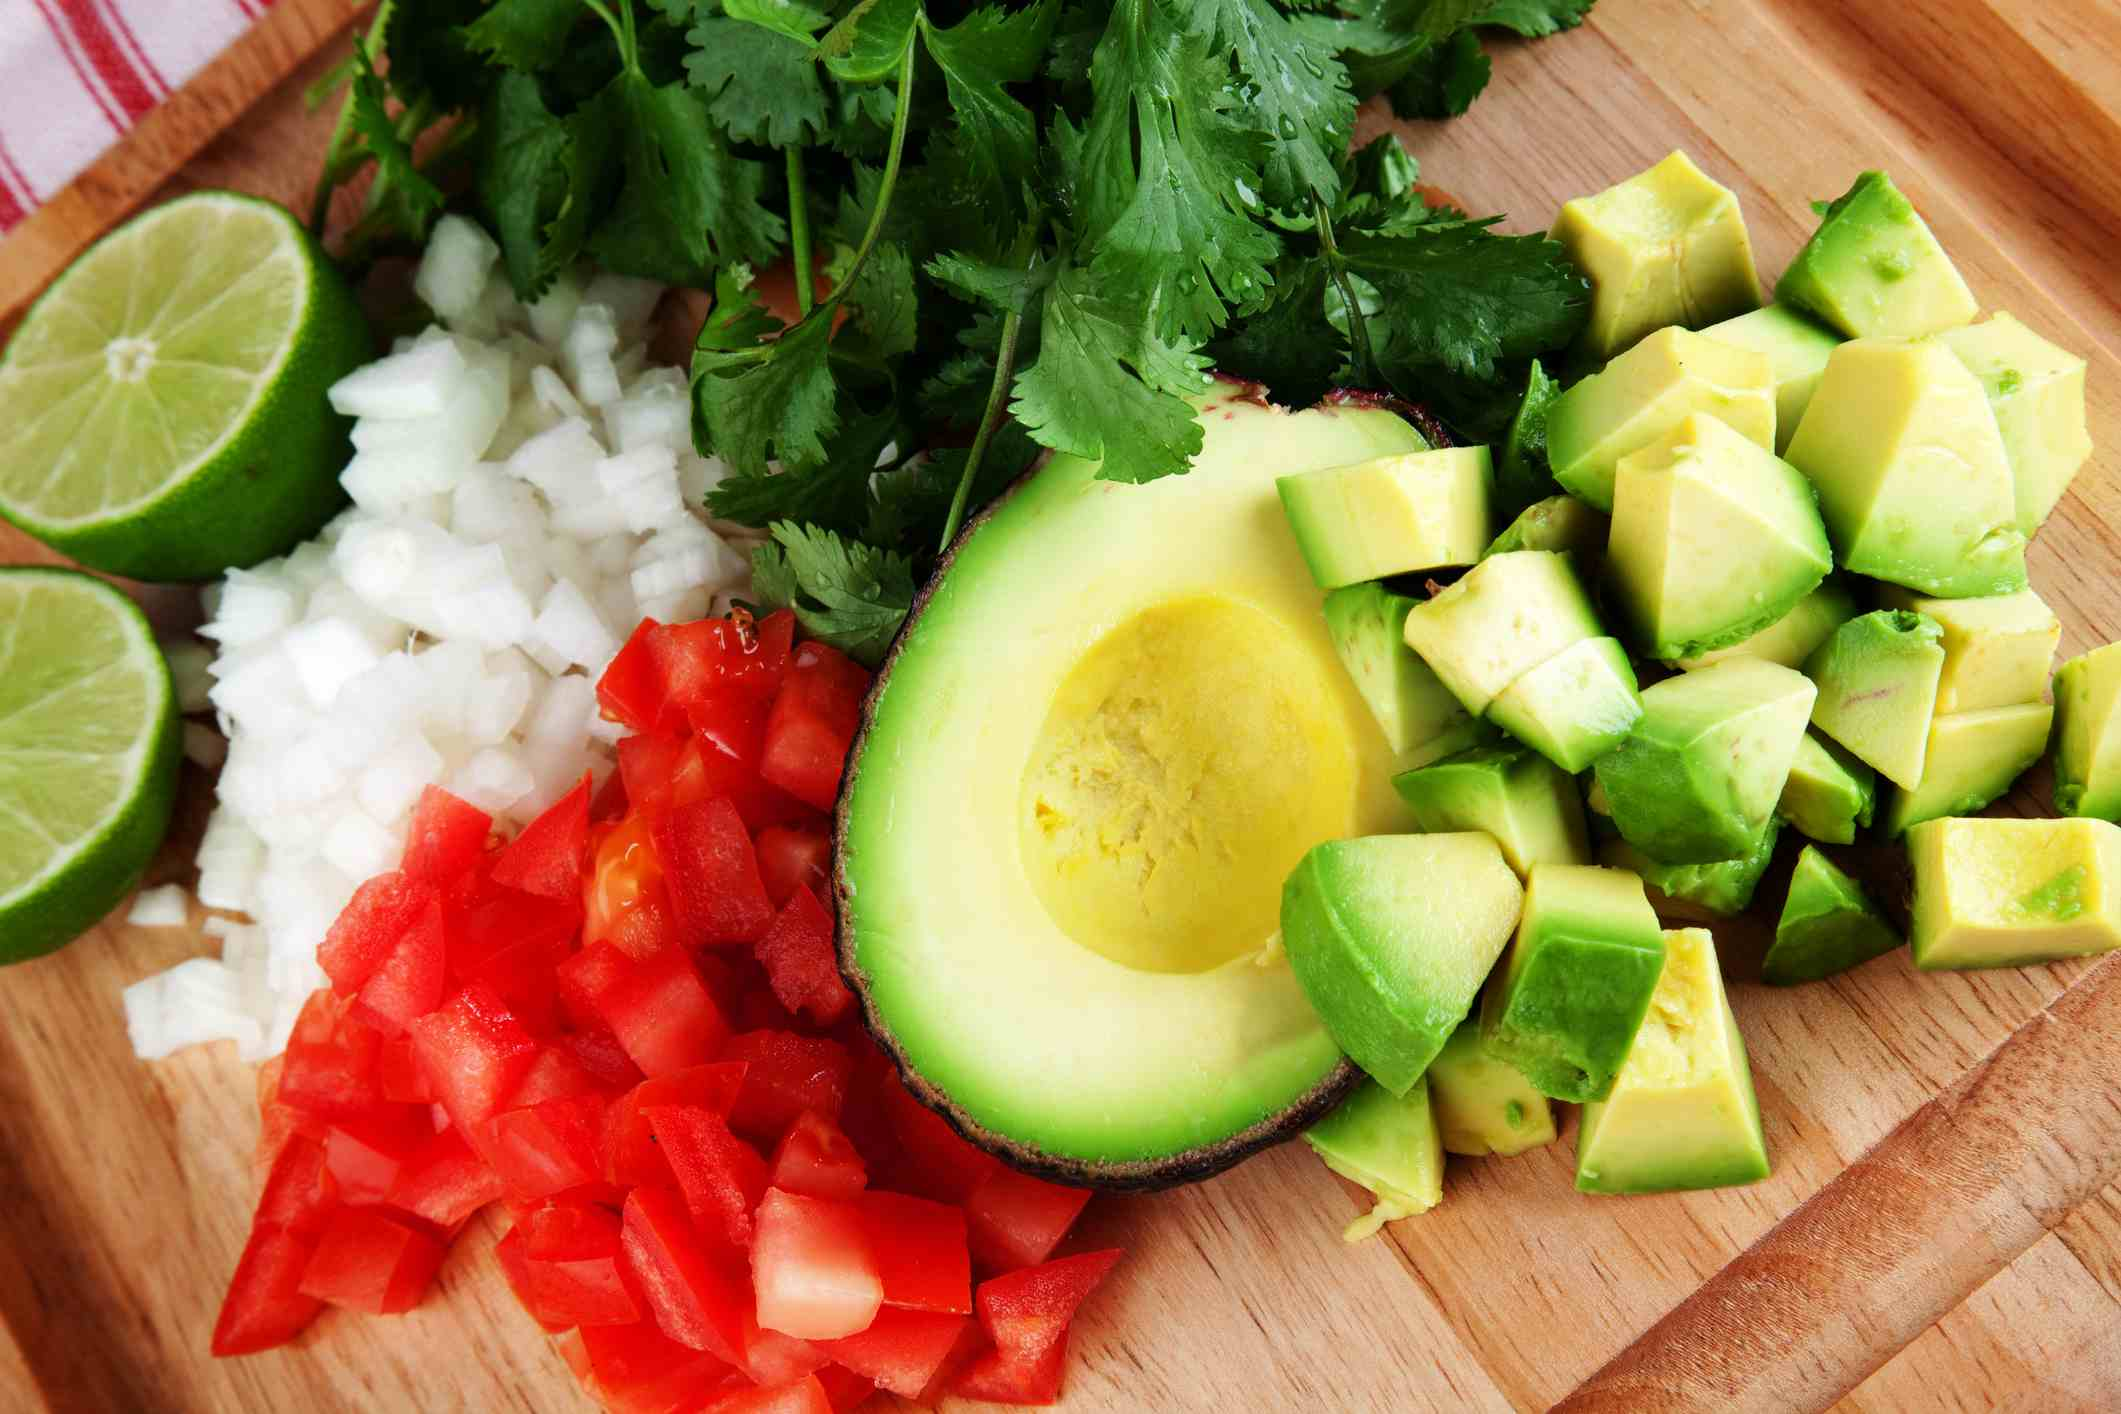 Tomato and avacado salsa ingredients